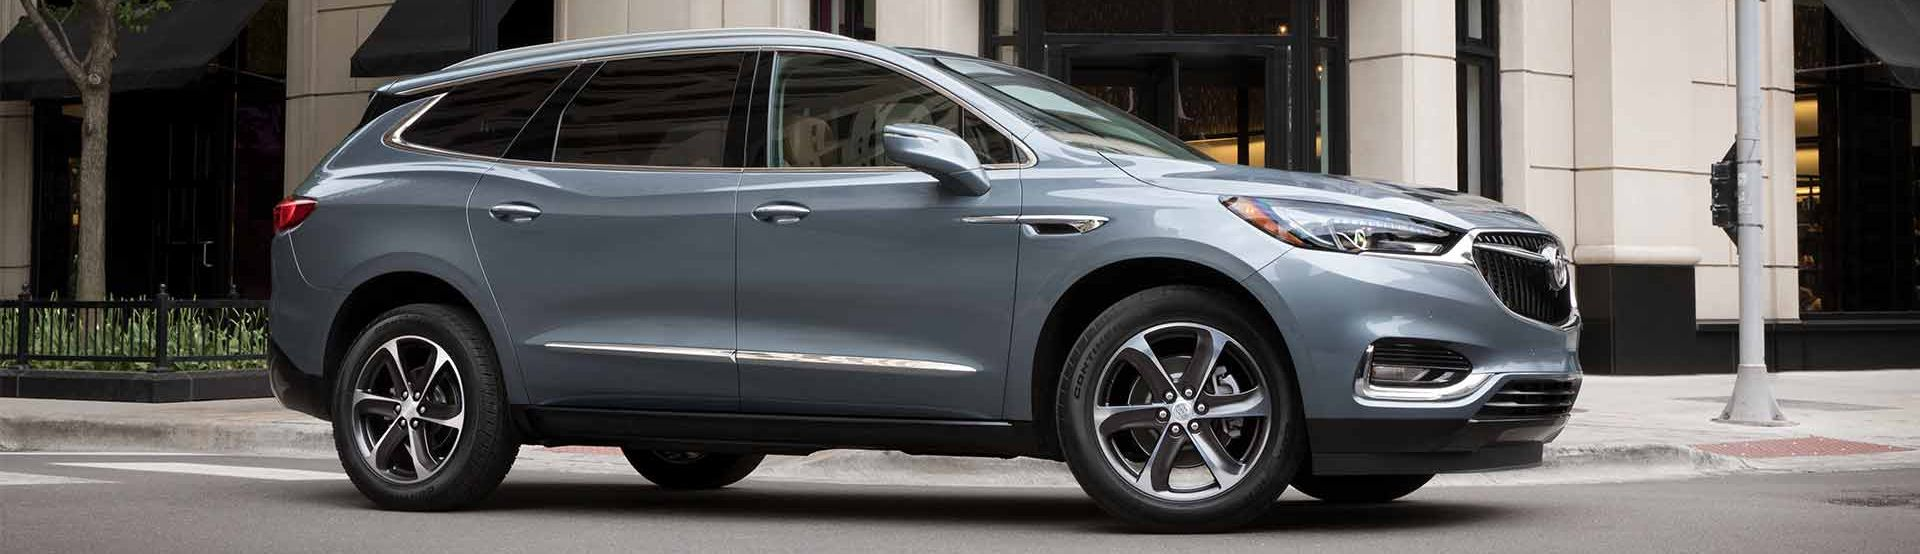 2018 Buick Enclave for Sale in Austin, MN